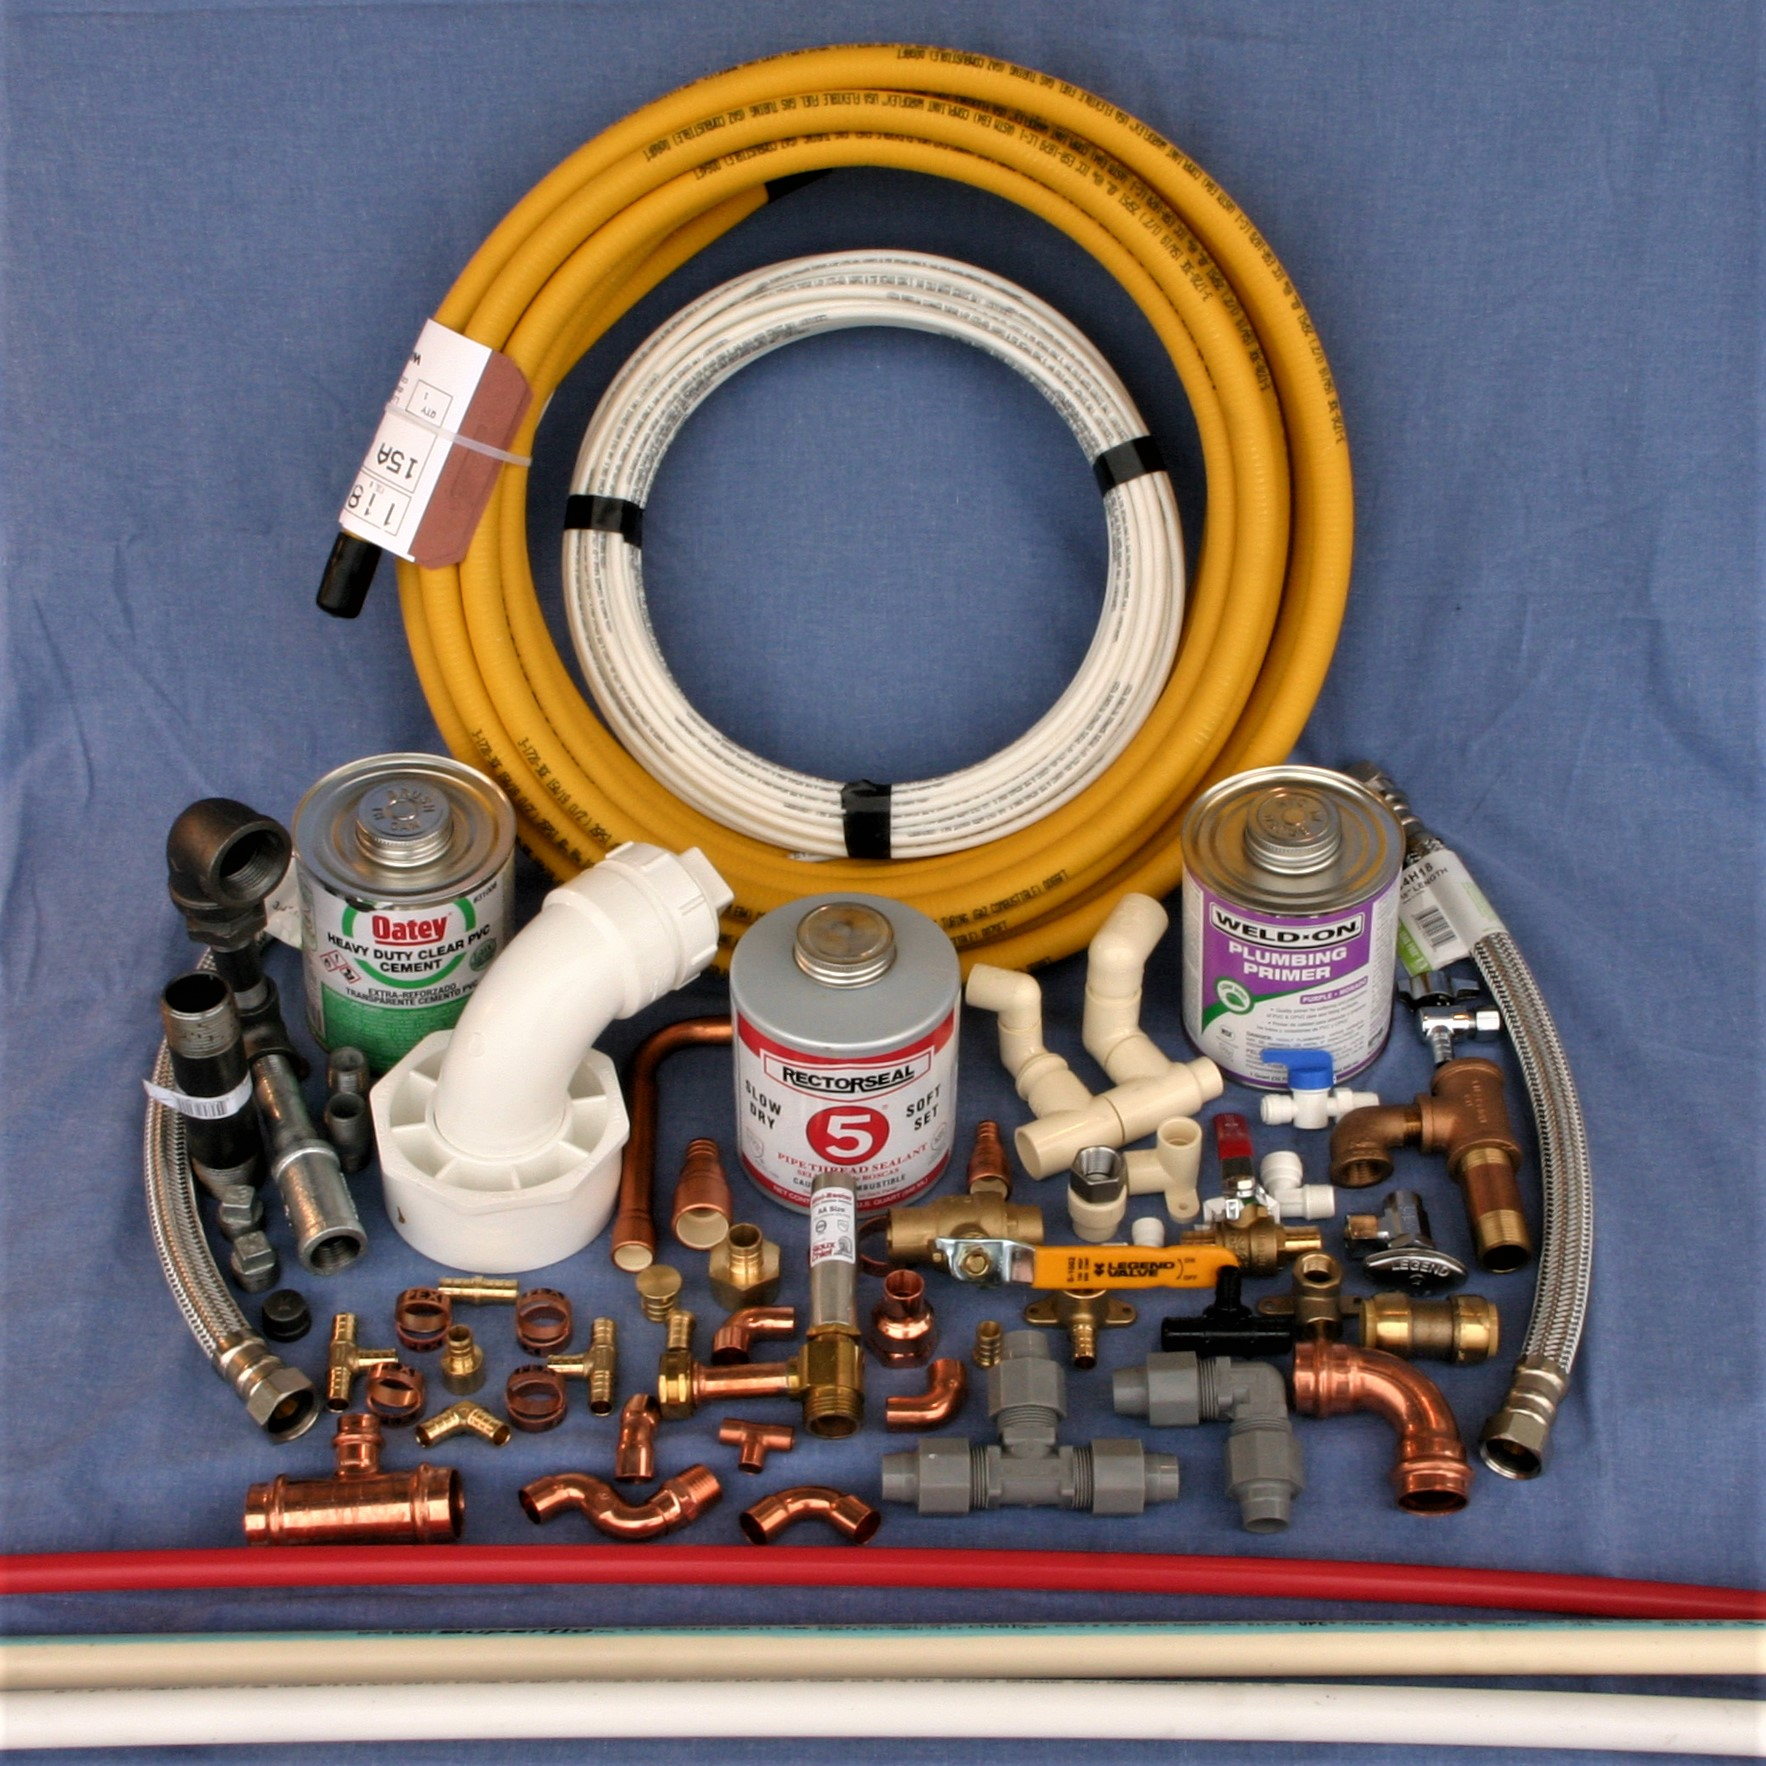 An assortment of plumbing valves and fittings.